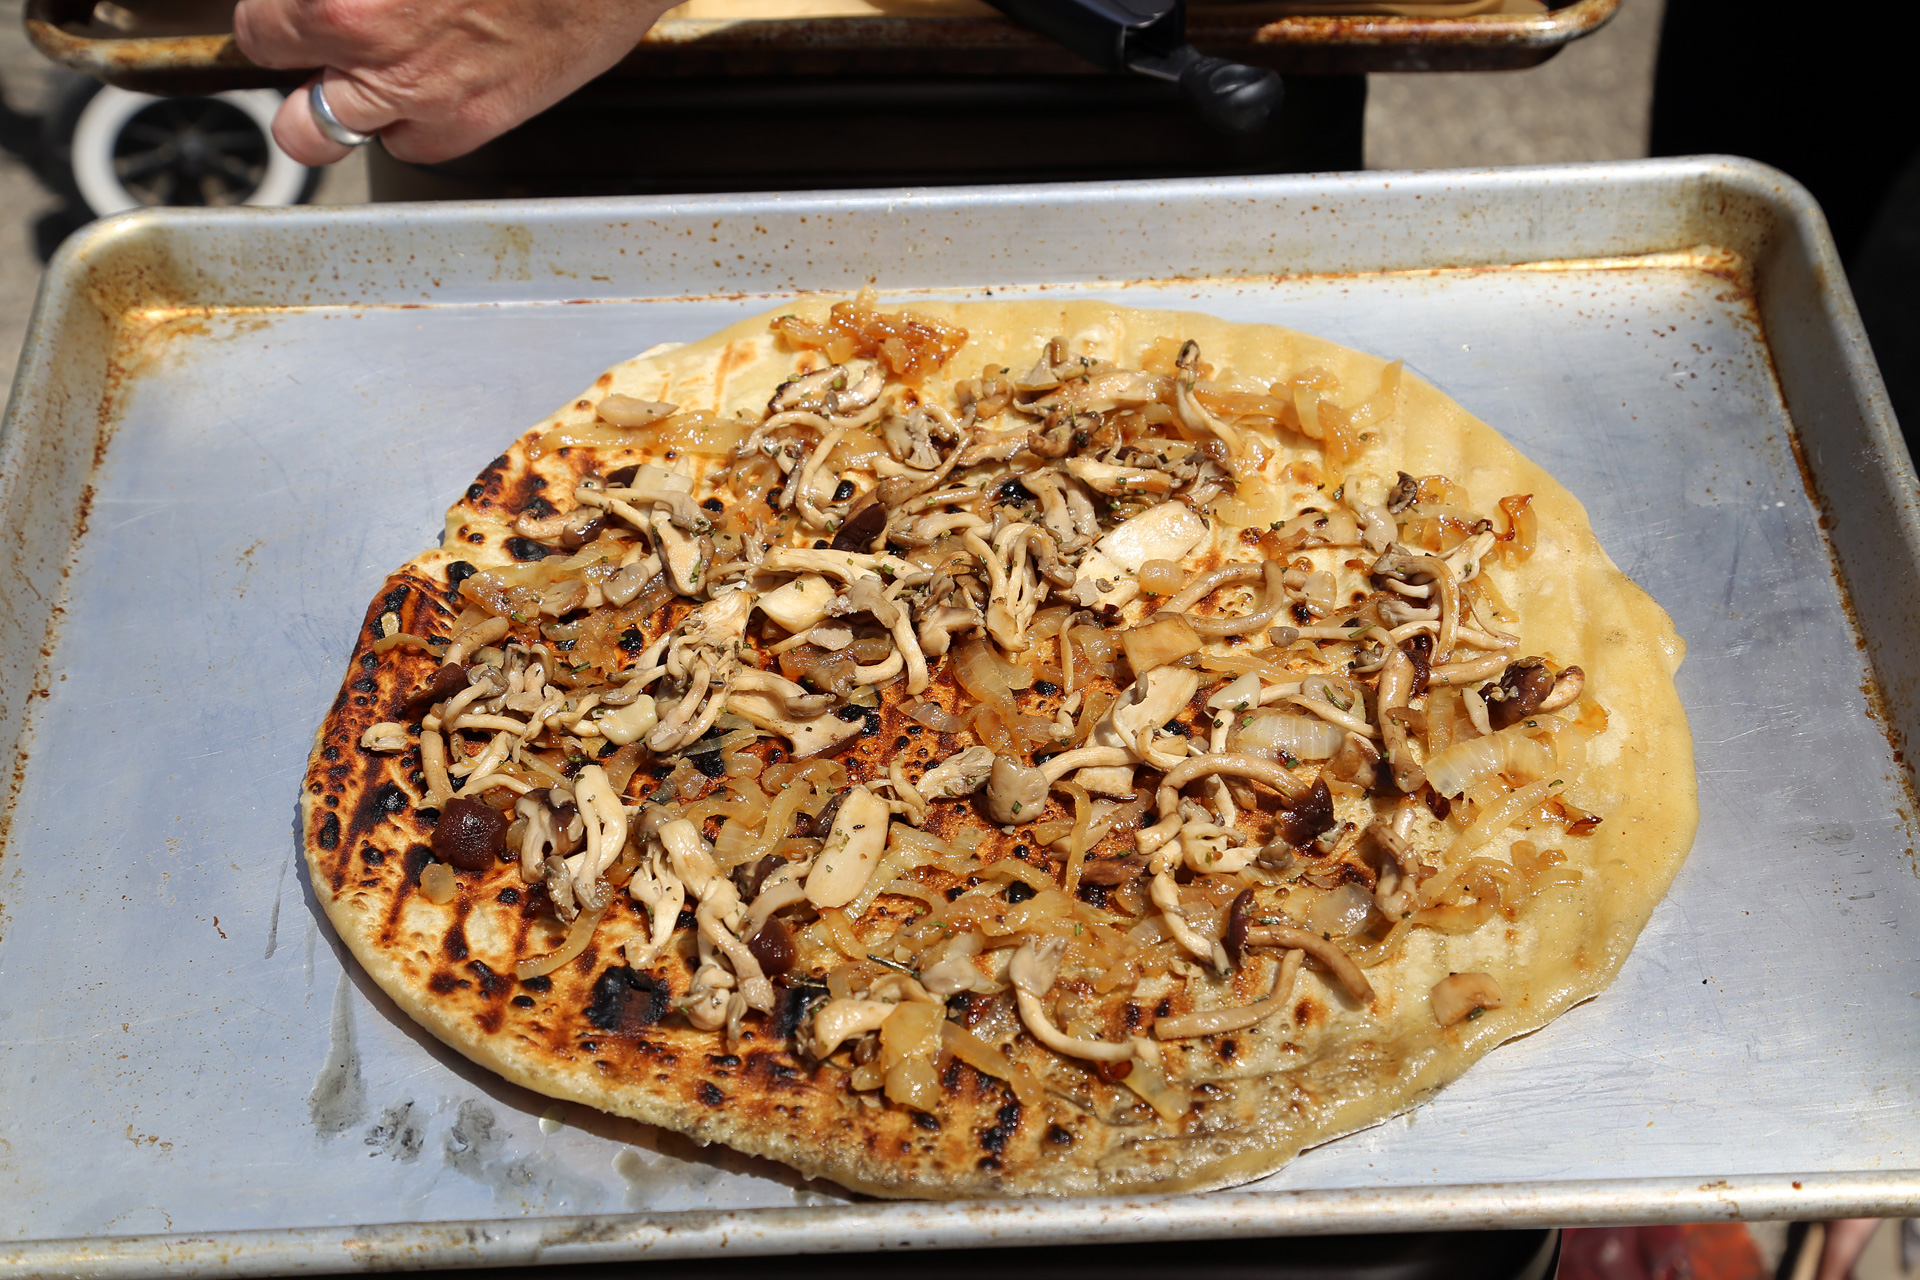 Top the grilled side of the pizza evenly with half the mushroom-onion mixture.